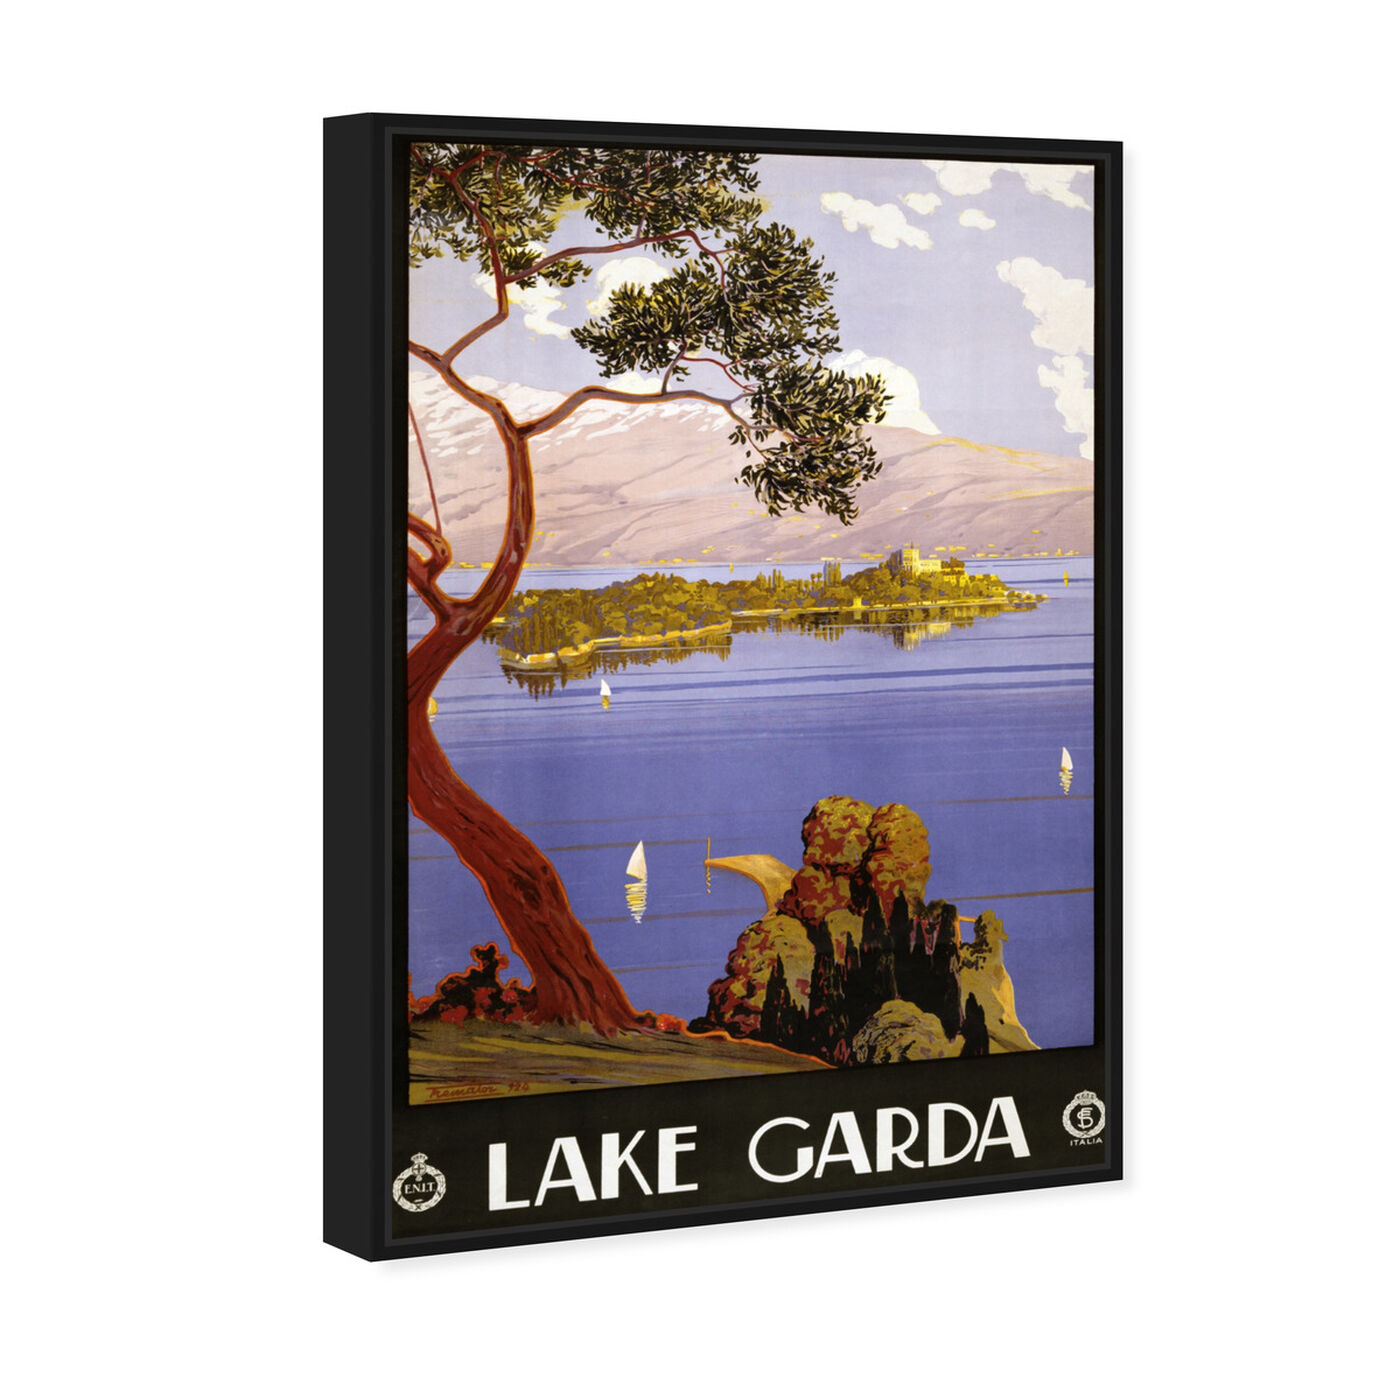 Angled view of Lake Garda featuring nature and landscape and nature art.